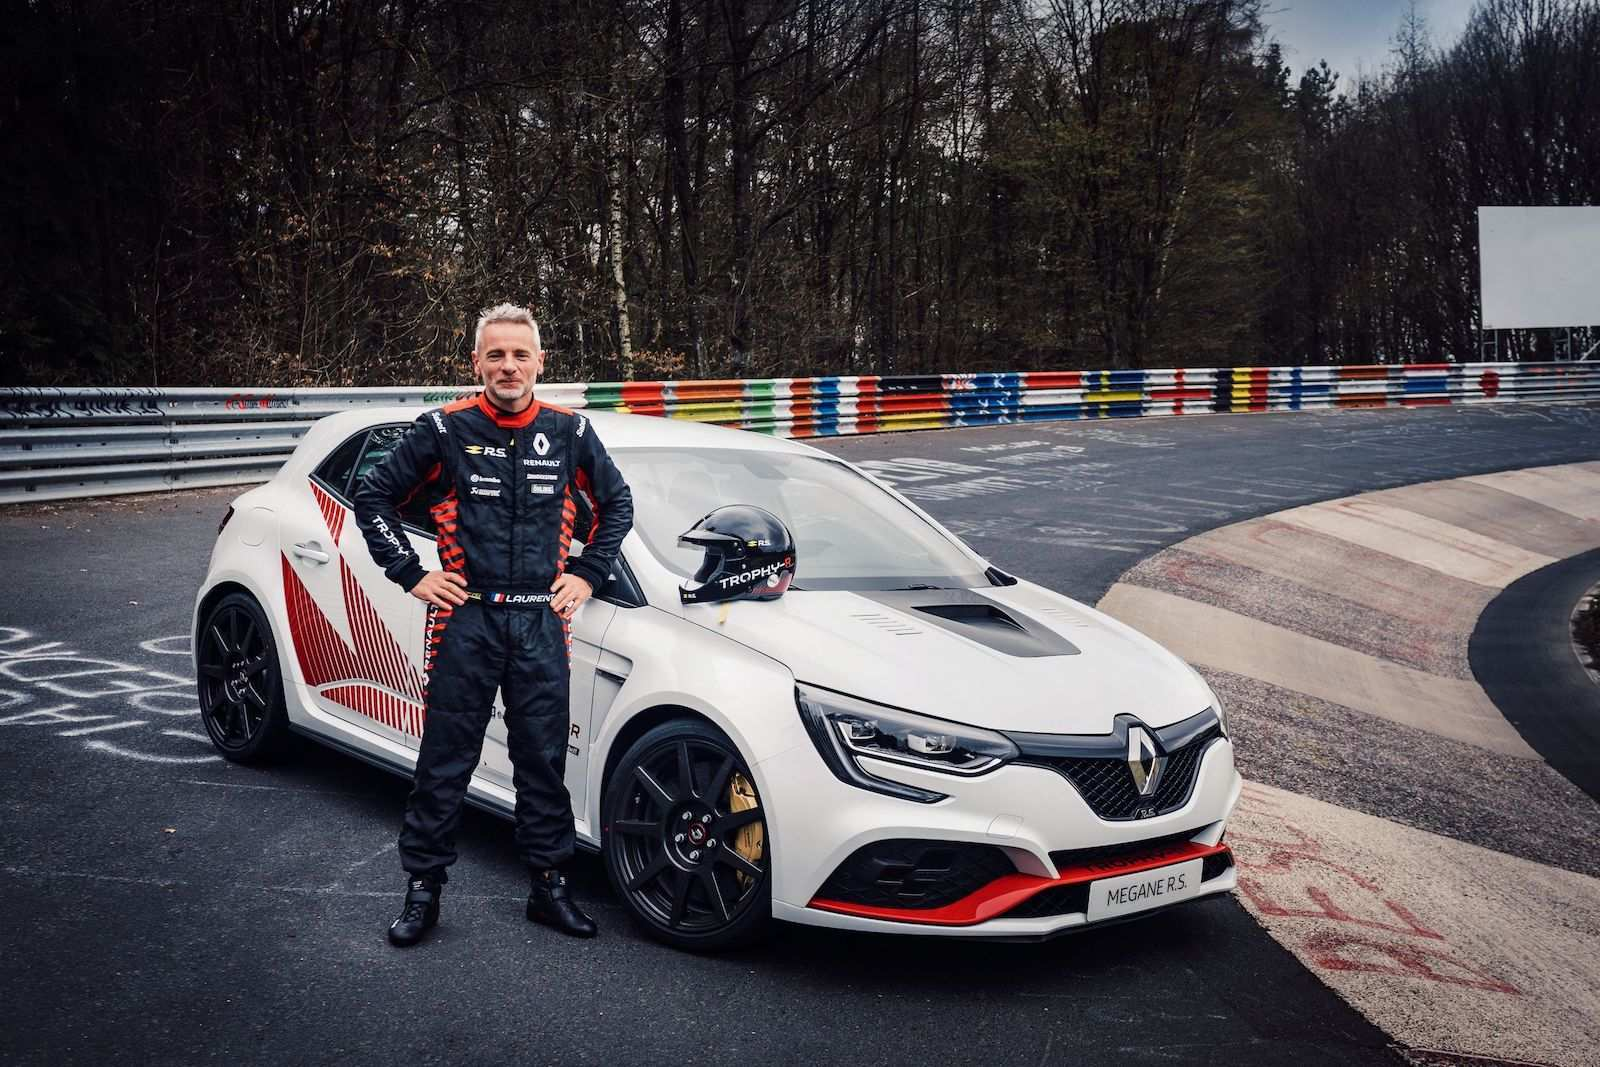 59 The Best 2019 Renault Megane Rs Review And Release Date